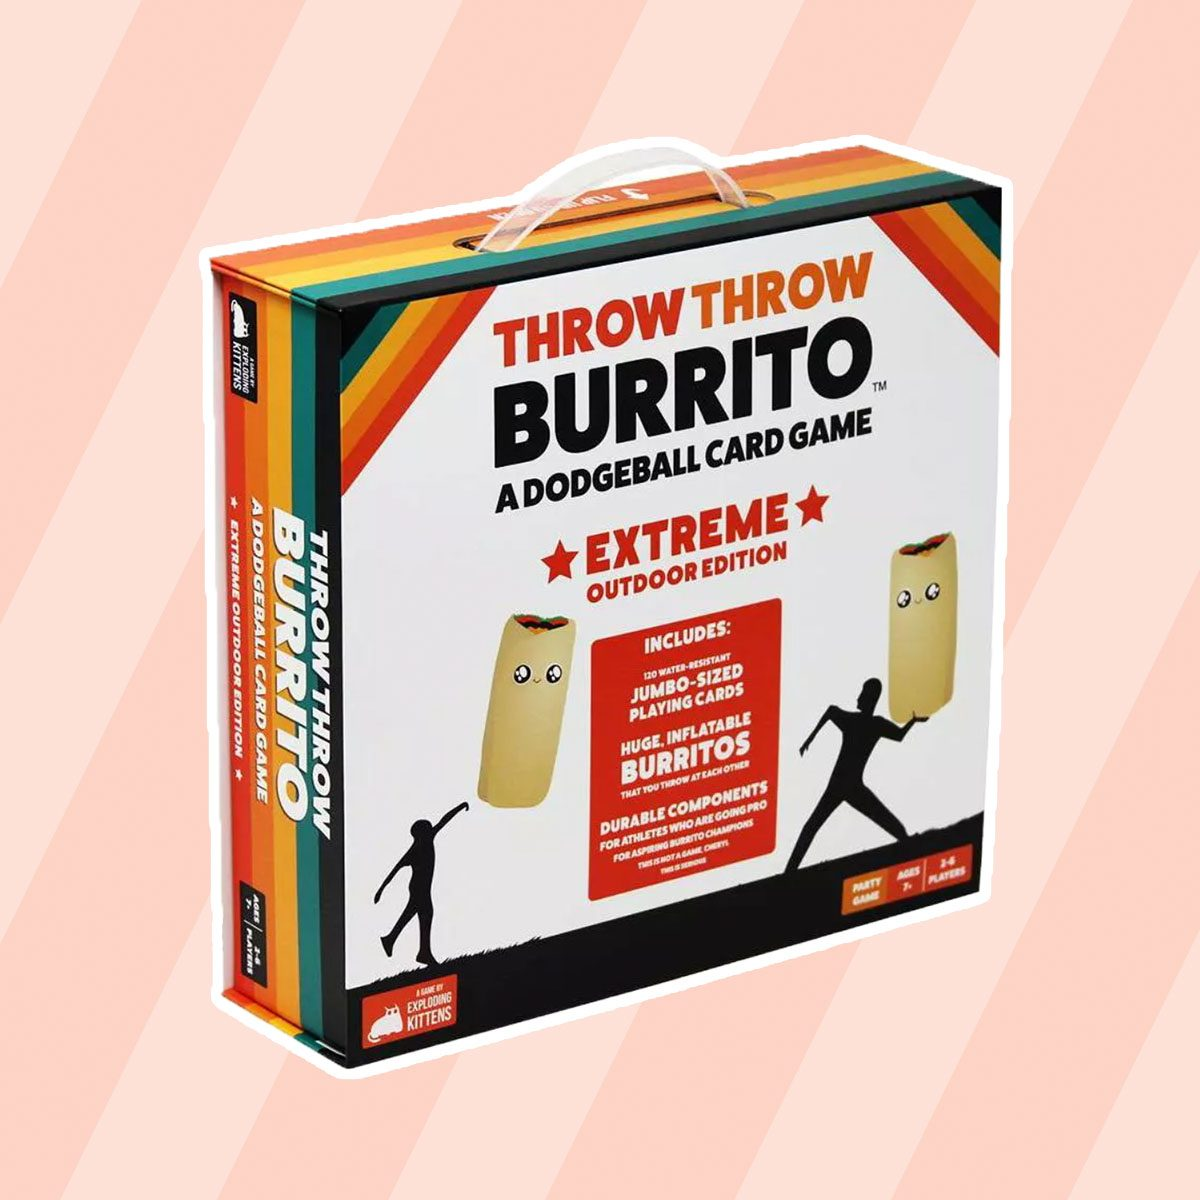 Throw Throw Burrito Game: Extreme Outdoor Edition